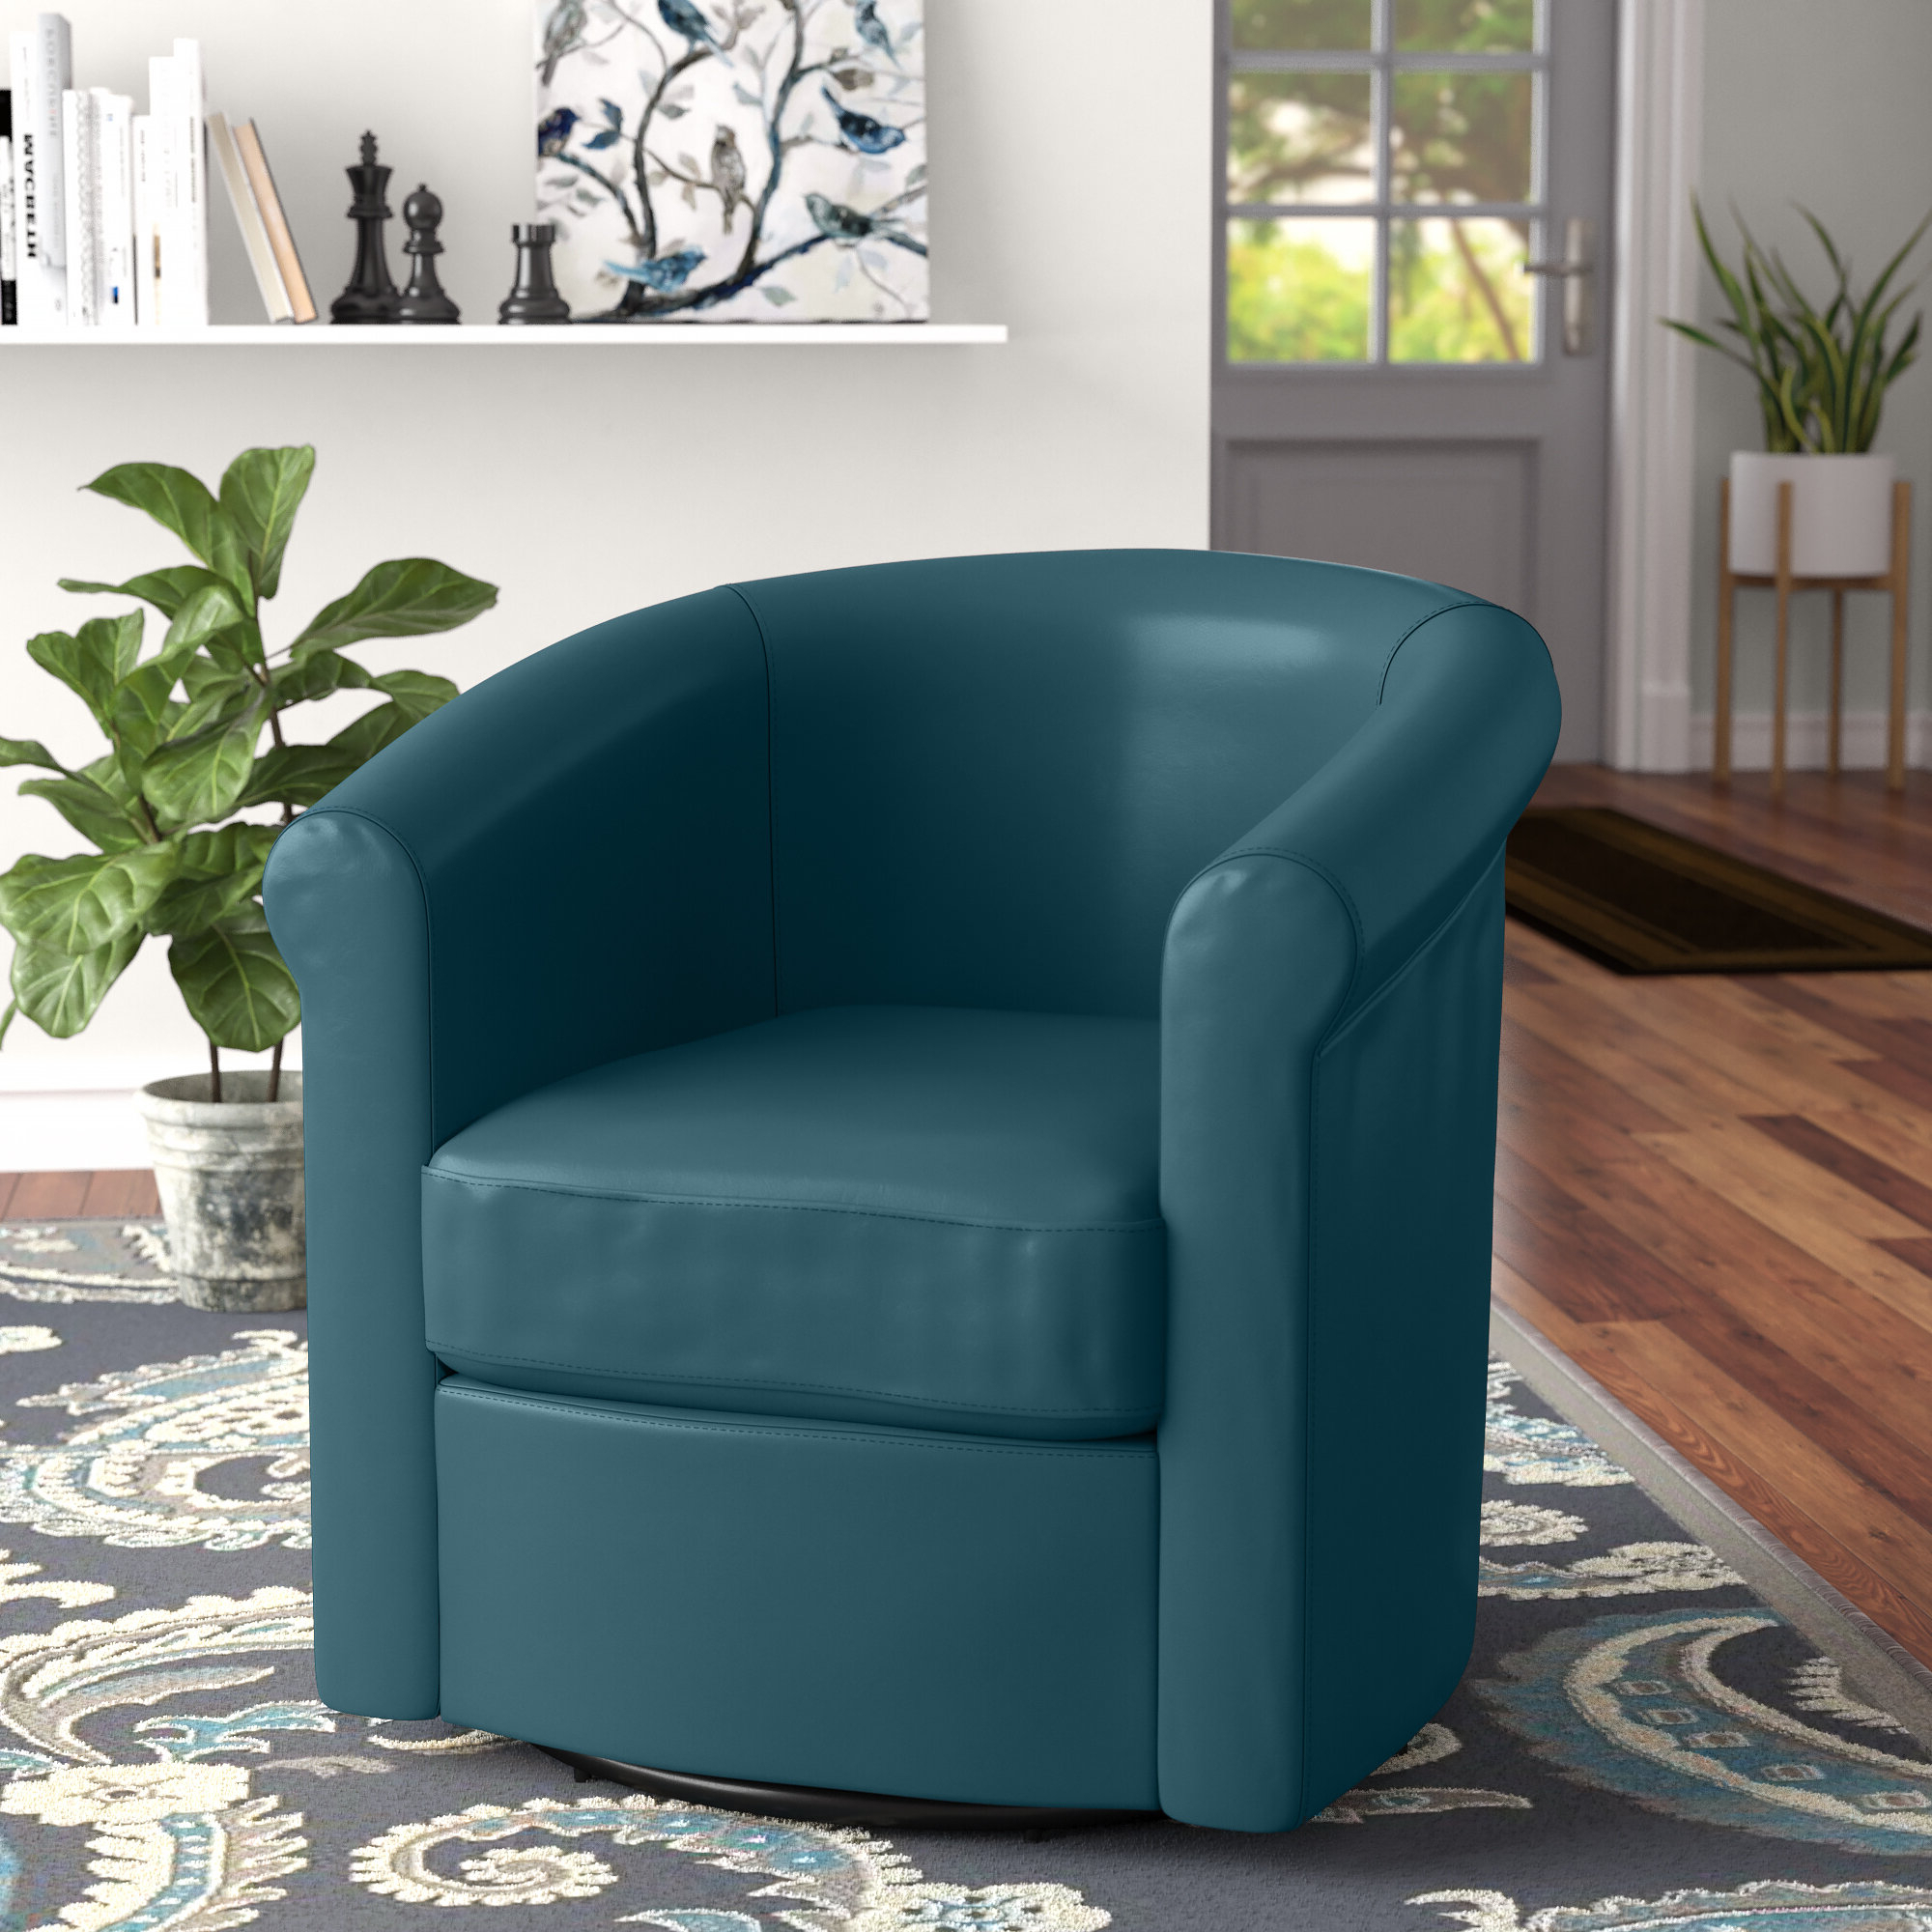 """Pinehill 29"""" W Faux Leather Swivel Barrel Chair Inside Most Recent Molinari Swivel Barrel Chairs (View 7 of 20)"""